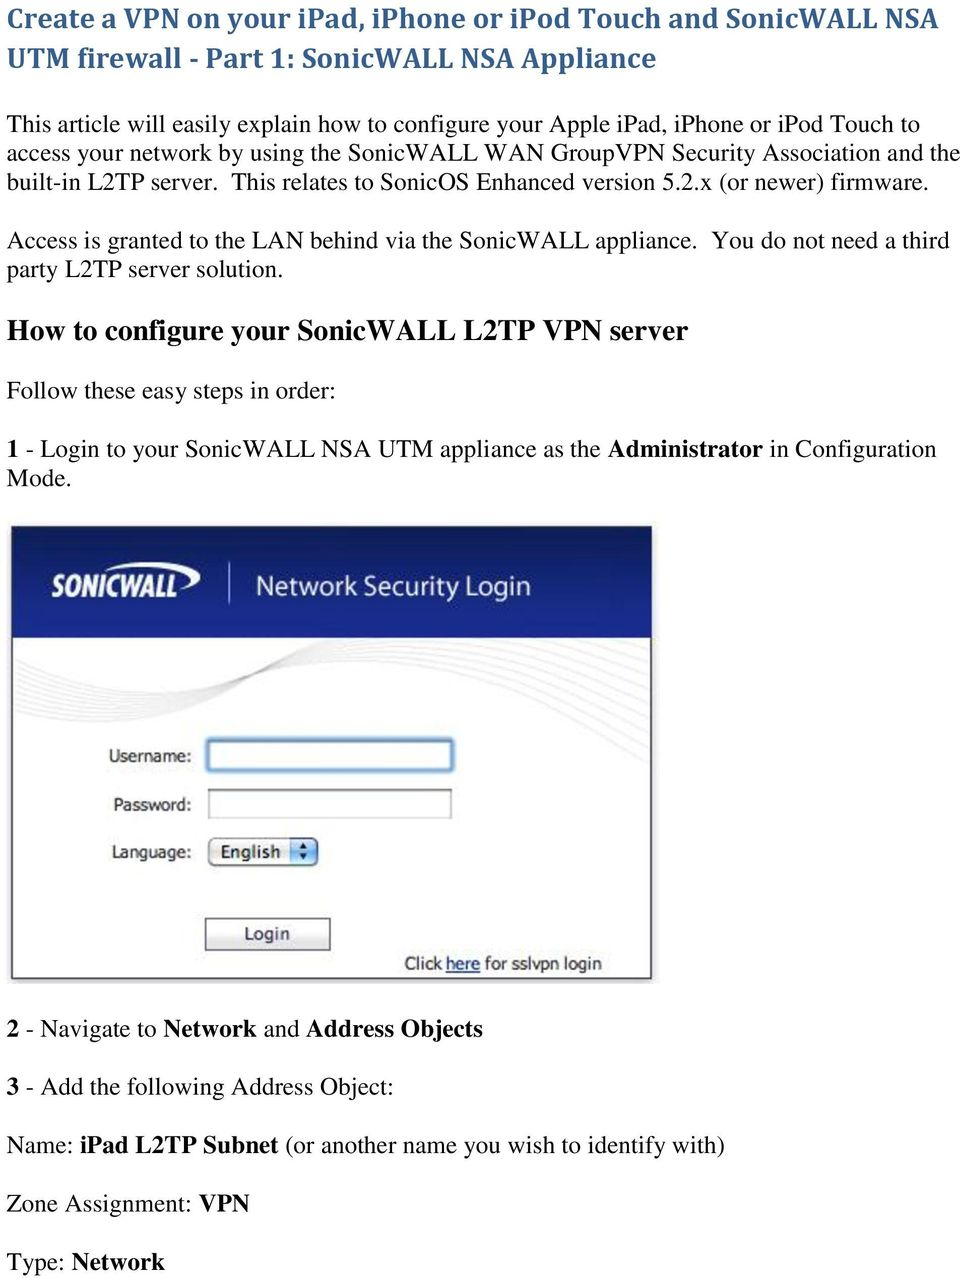 Access is granted to the LAN behind via the SonicWALL appliance. You do not need a third party L2TP server solution.